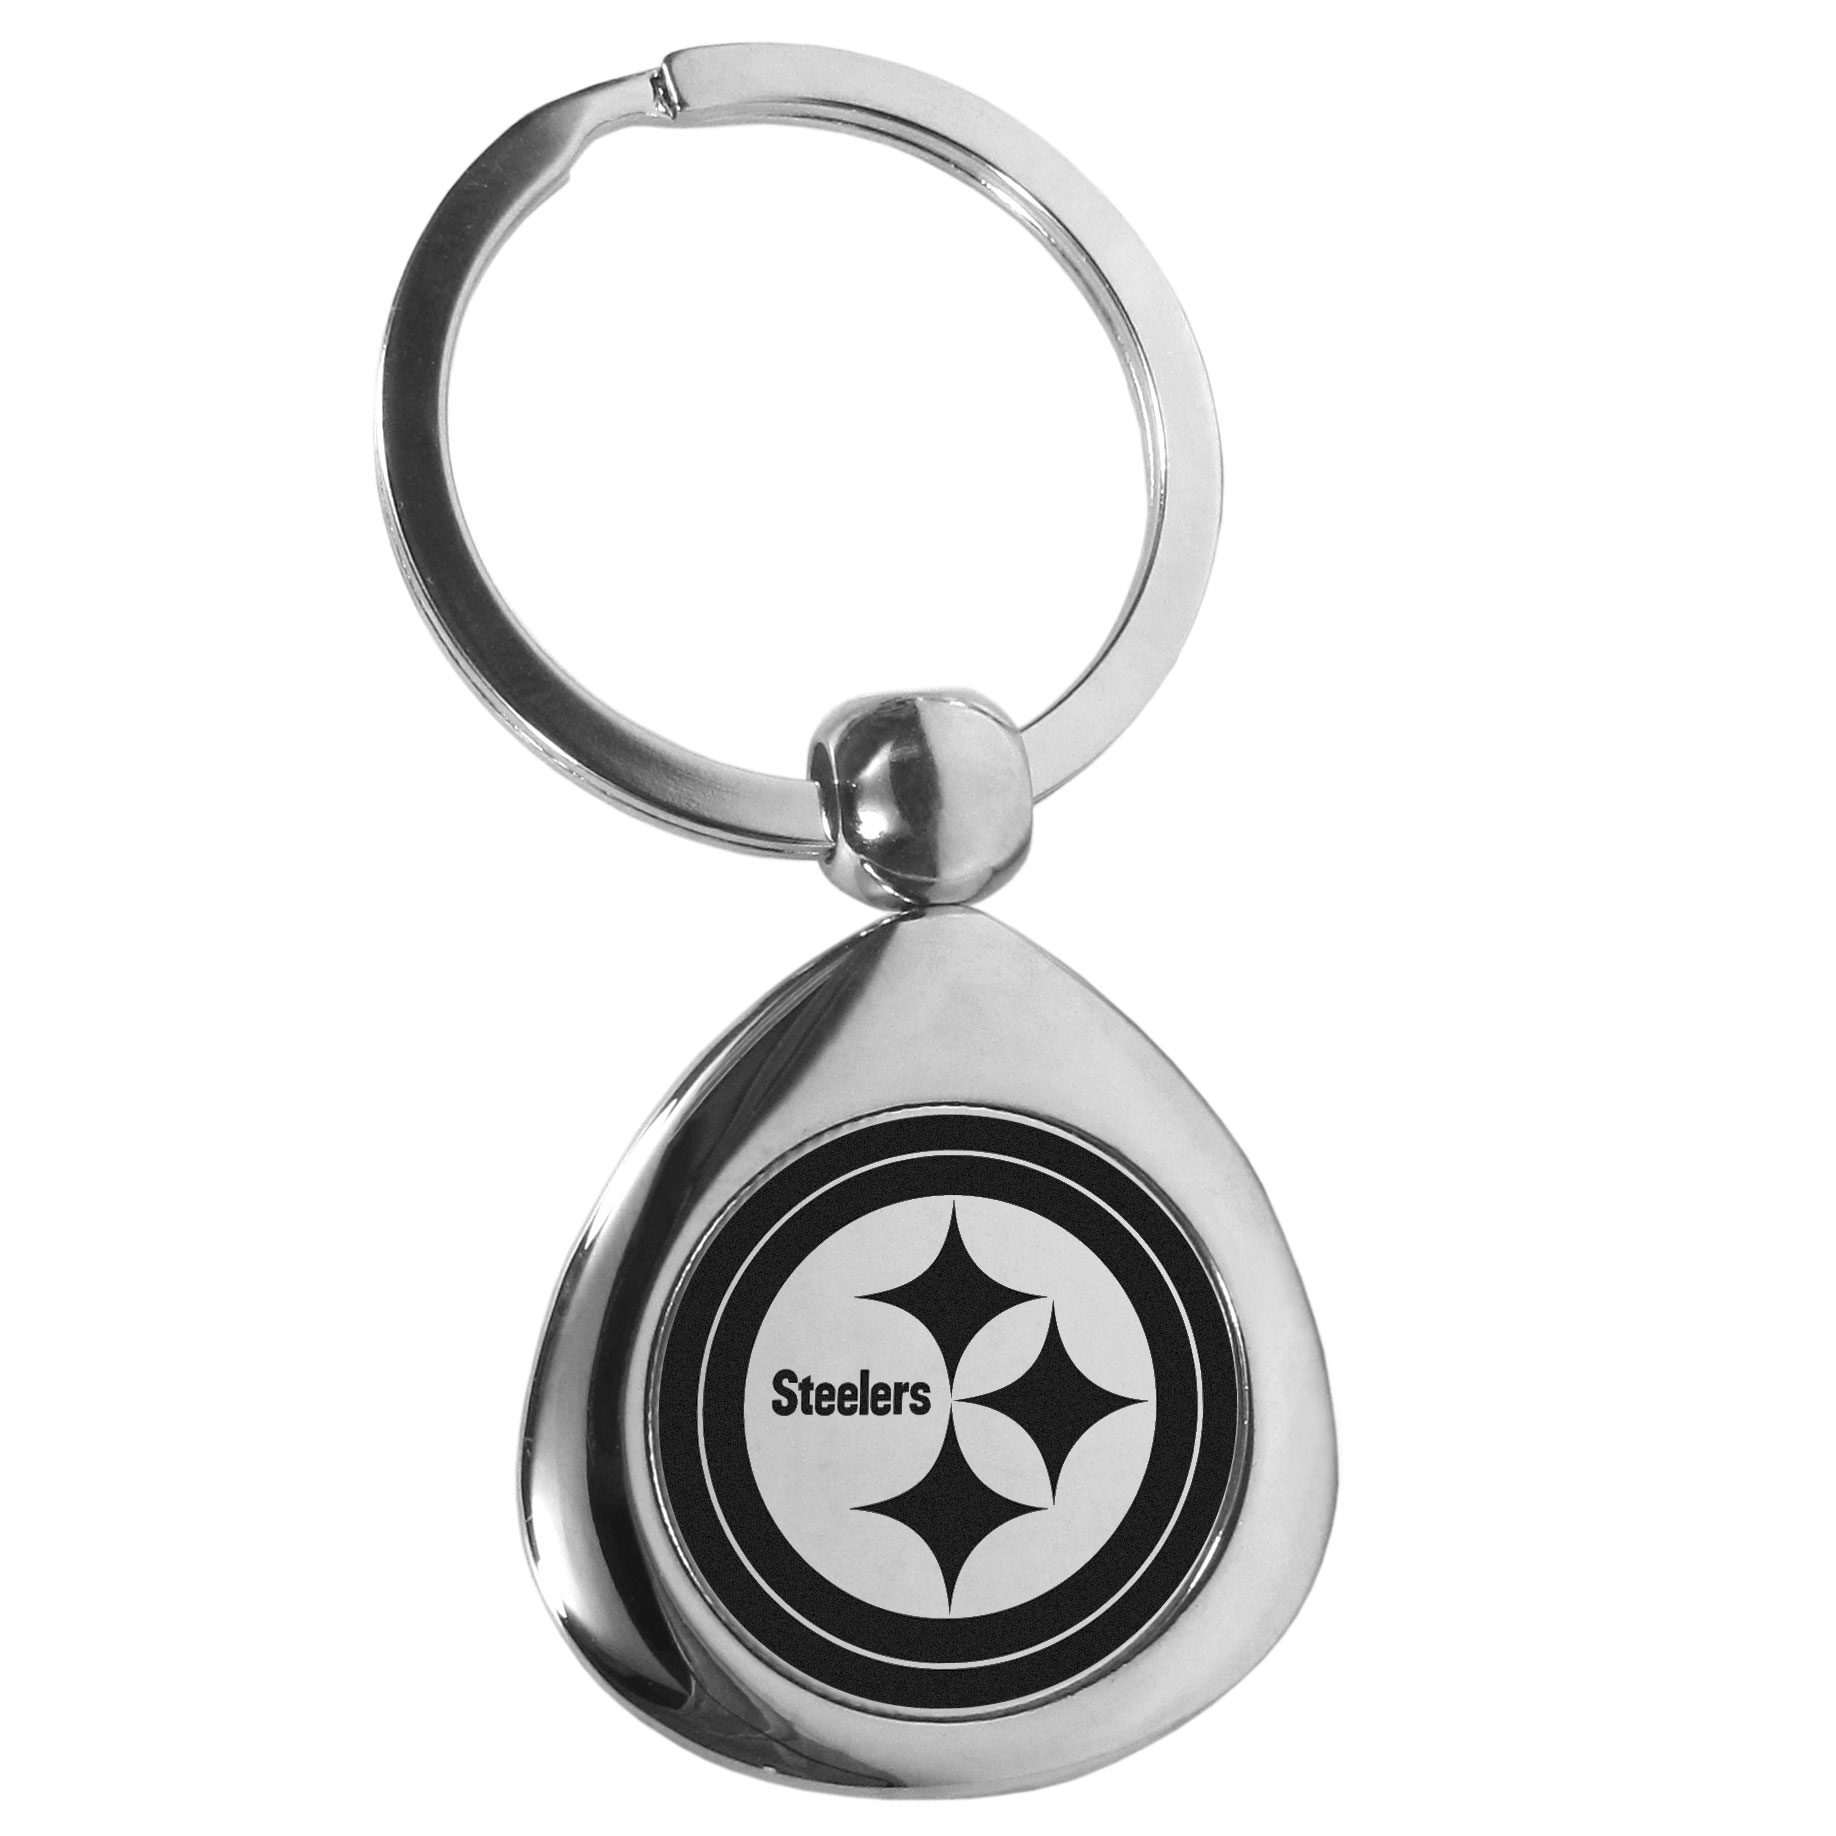 Pittsburgh Steelers Round Teardrop Key Chain - Our high polish chrome Pittsburgh Steelers round teardrop key chain has a classy look with a sporty twist. The high-quality key fob features the team logo in the team's primary color. The key ring is a flat split ring that is easier to load you home and auto keys onto.